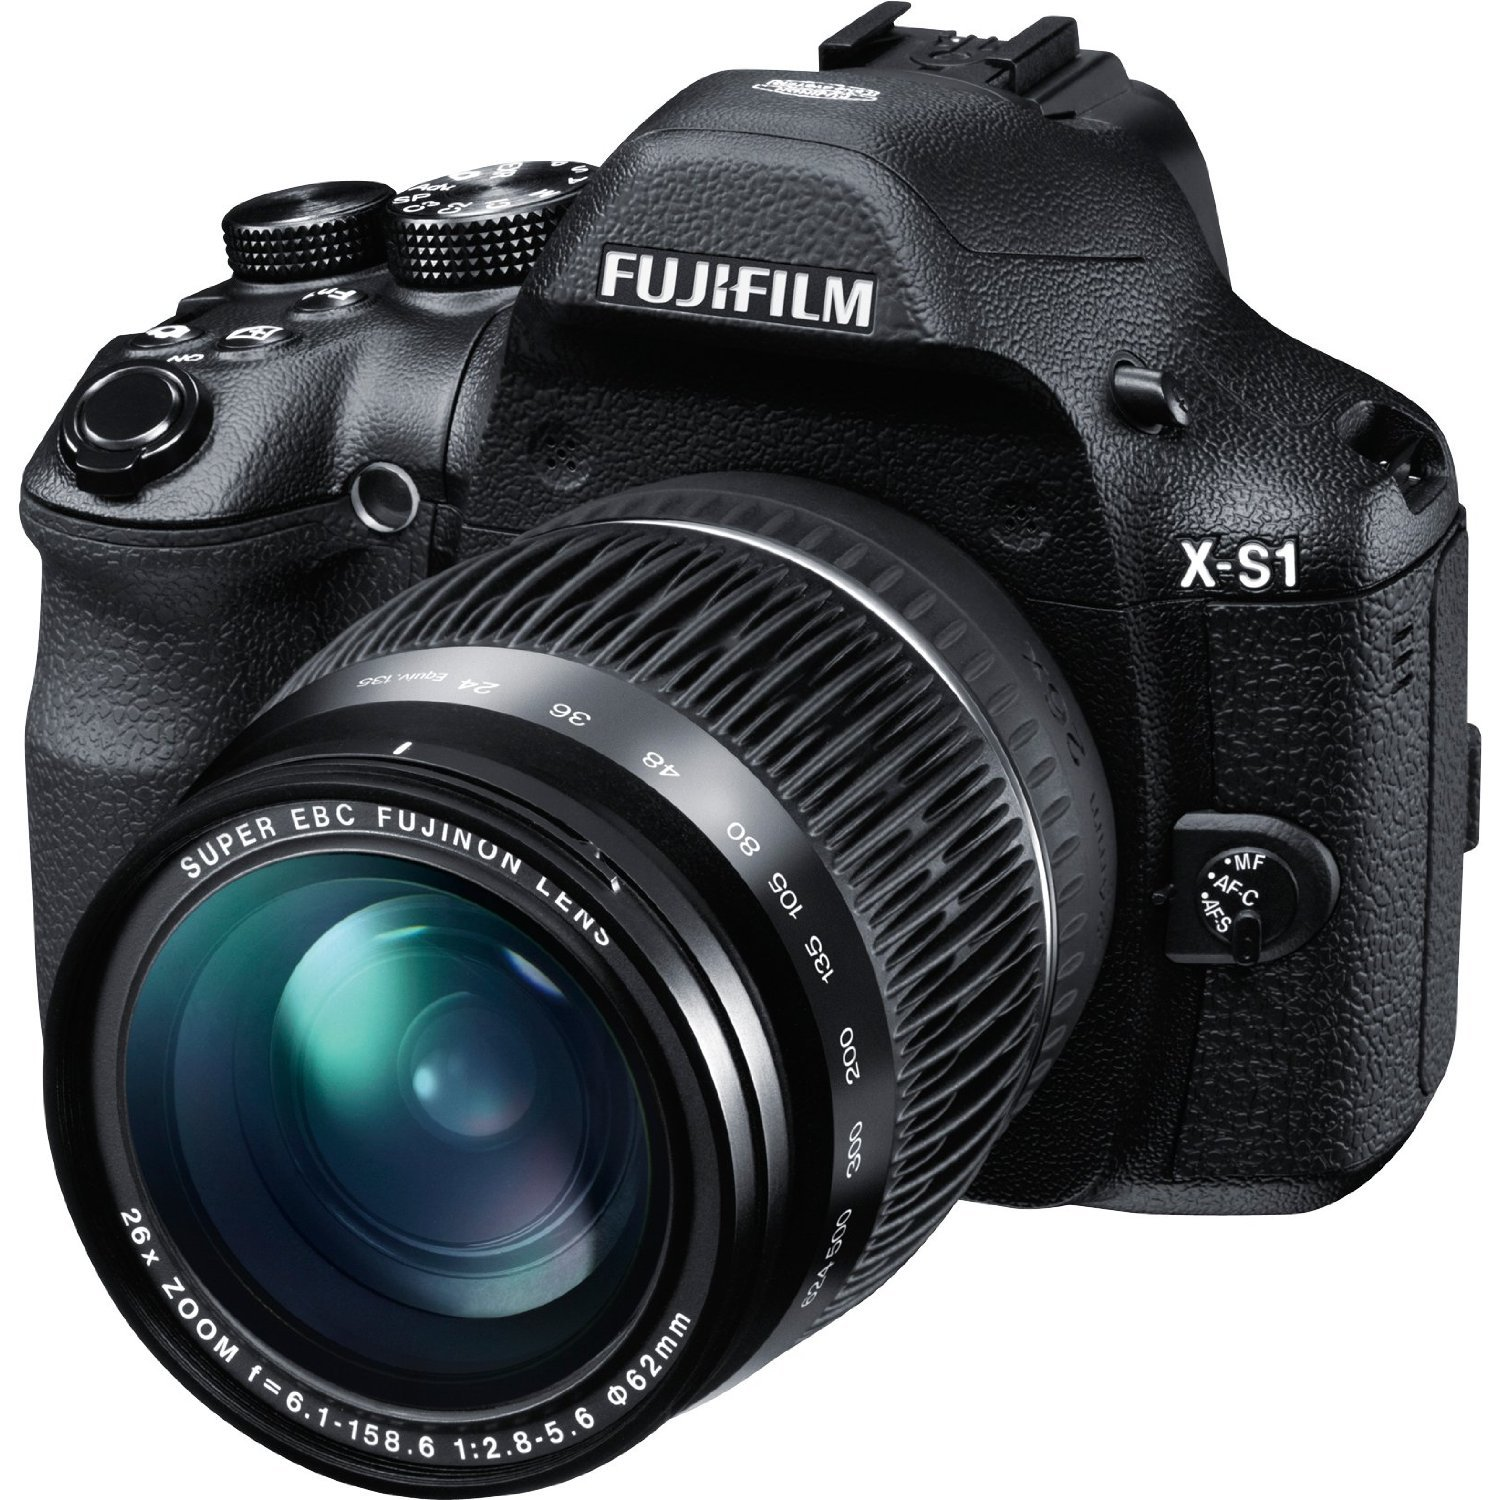 Fujifilm X-S1 12MP EXR CMOS Digital Camera with Fuijinon F2.8 to F5.6 Telephoto Lens and Ultra-Smooth 26x Manual Zoom ($379.00 )